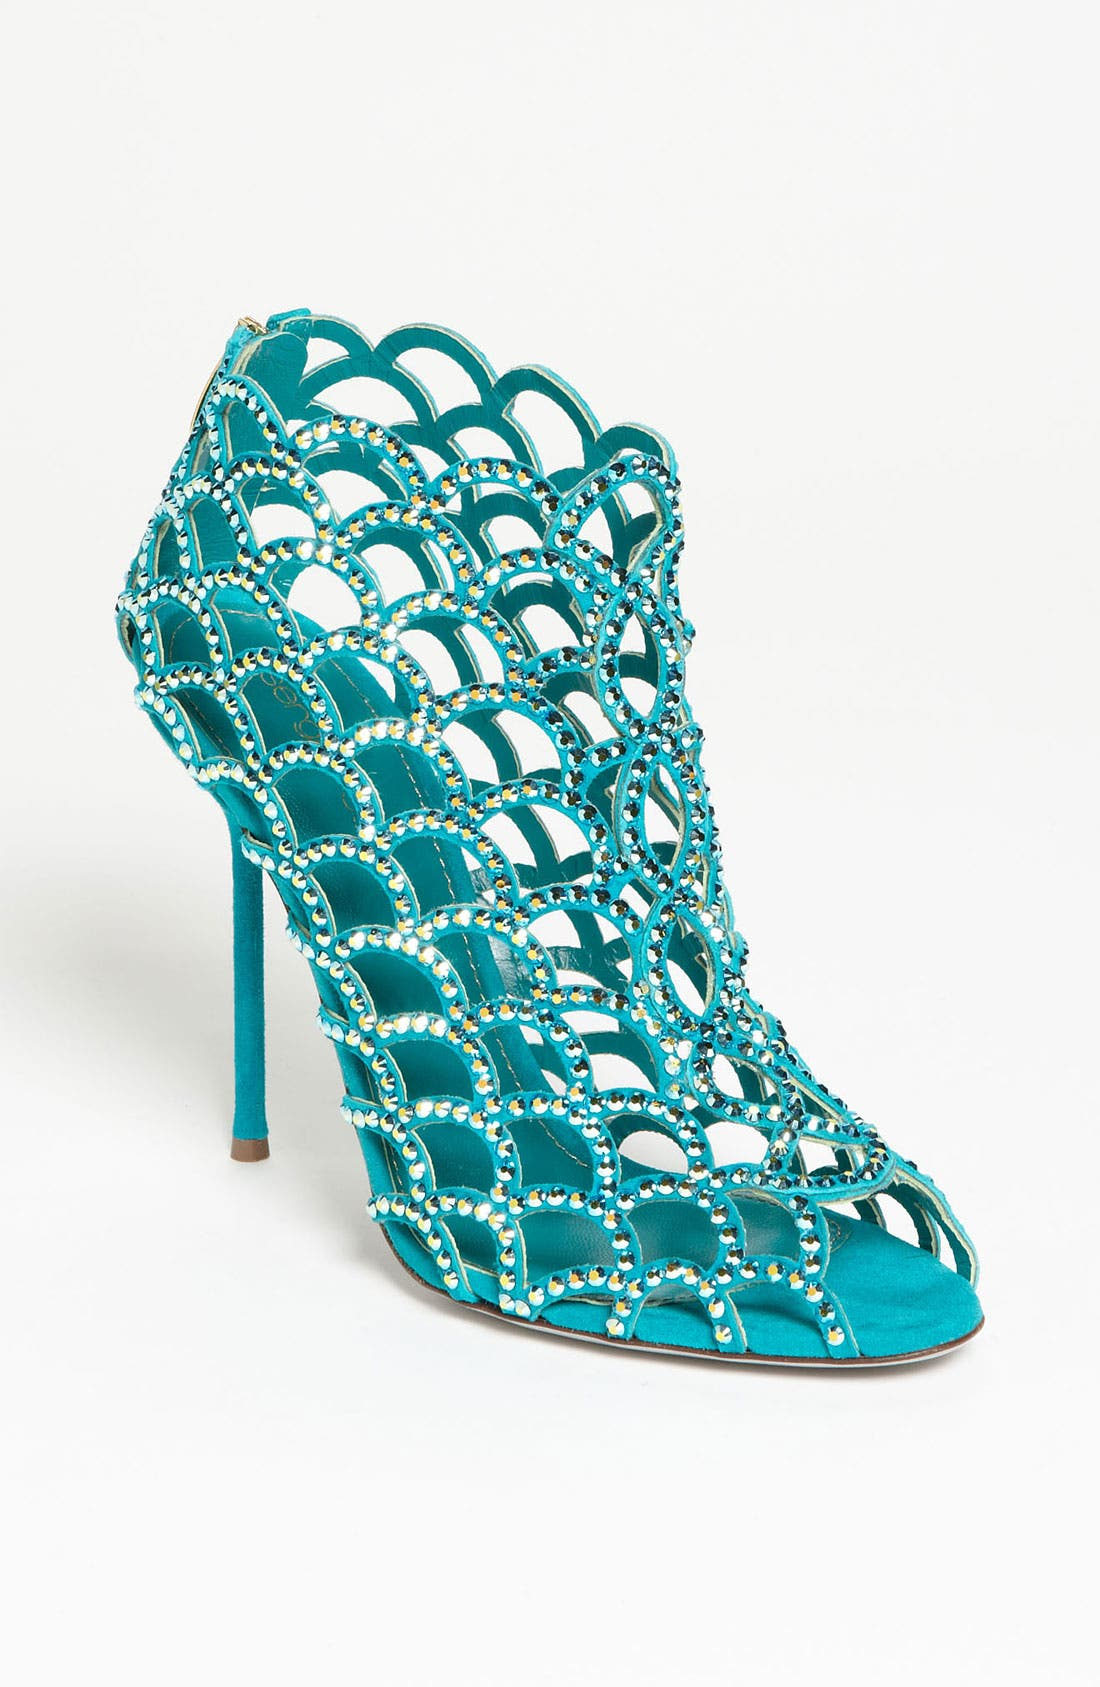 Alternate Image 1 Selected - Sergio Rossi 'Mermaid' Caged Sandal